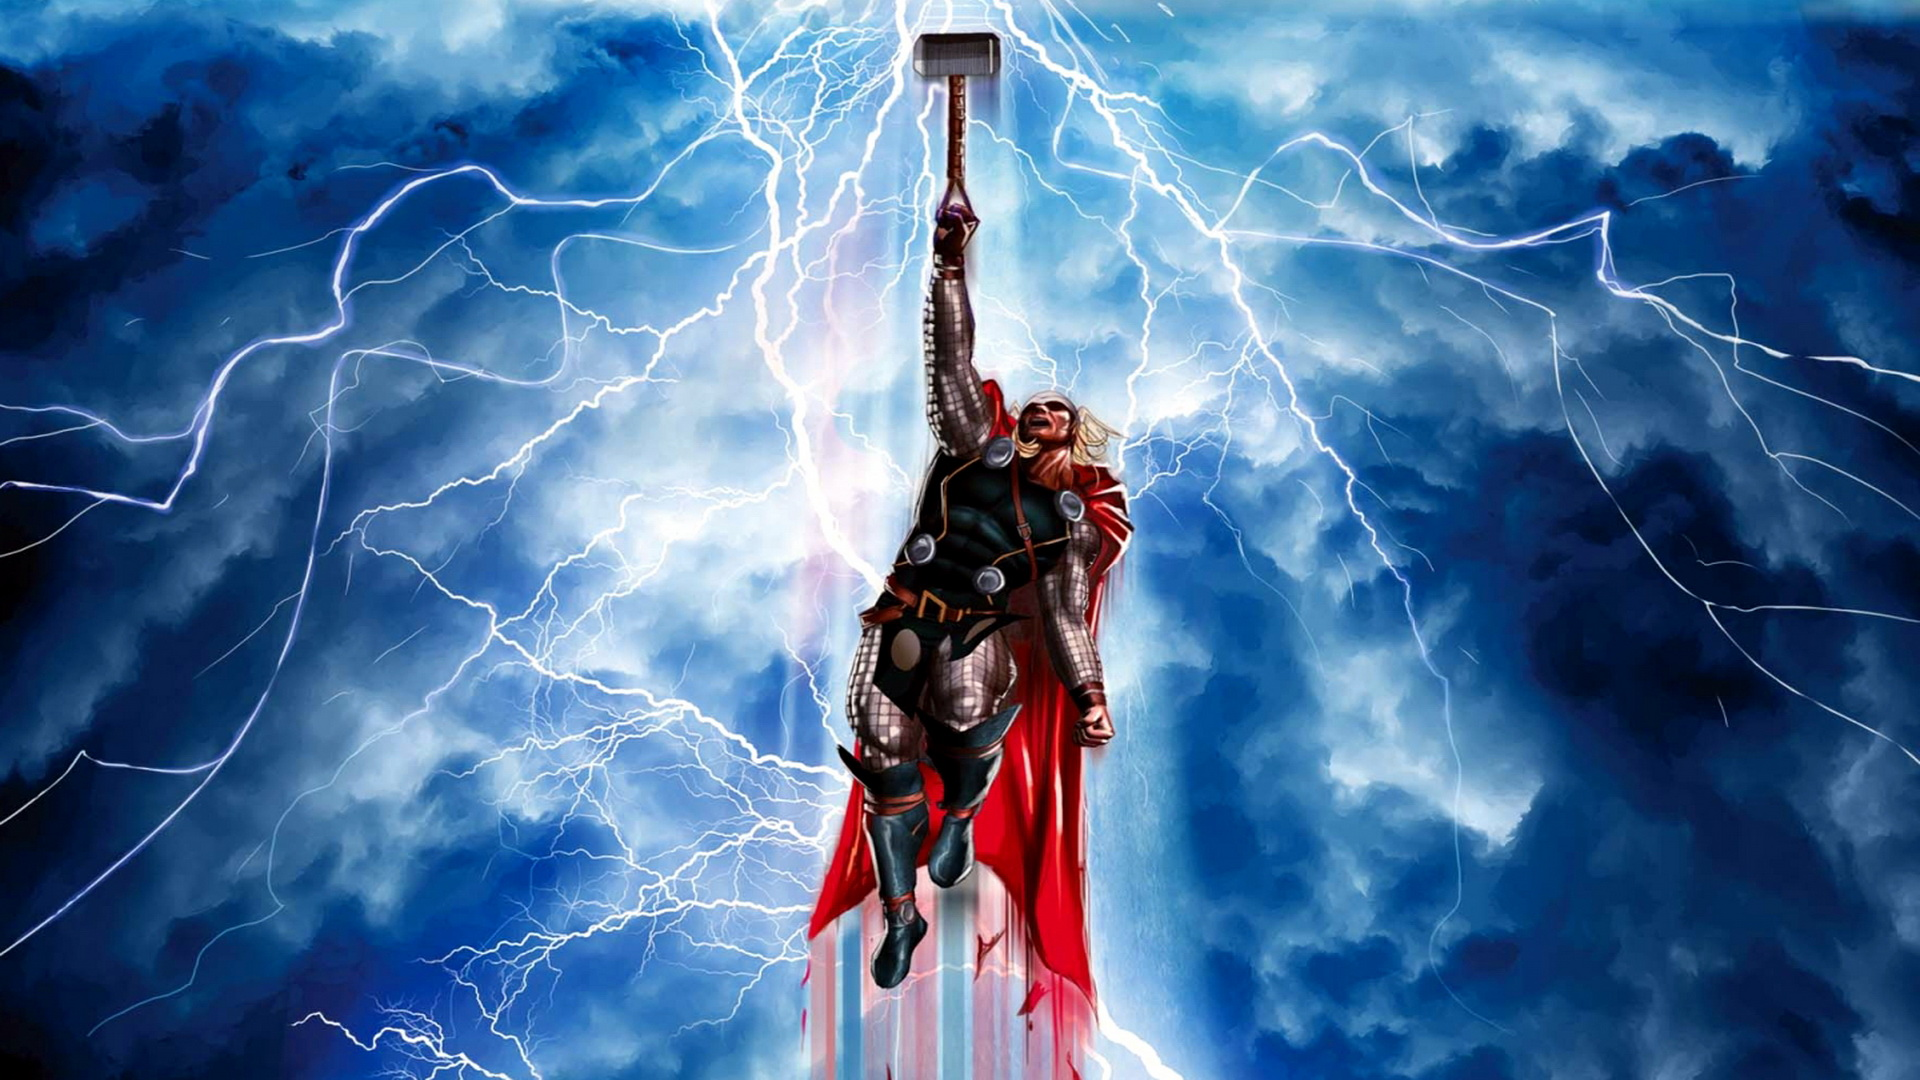 Hd wallpaper thor - Thor Wallpapers Hd Backgrounds Thor Wallpaper 11